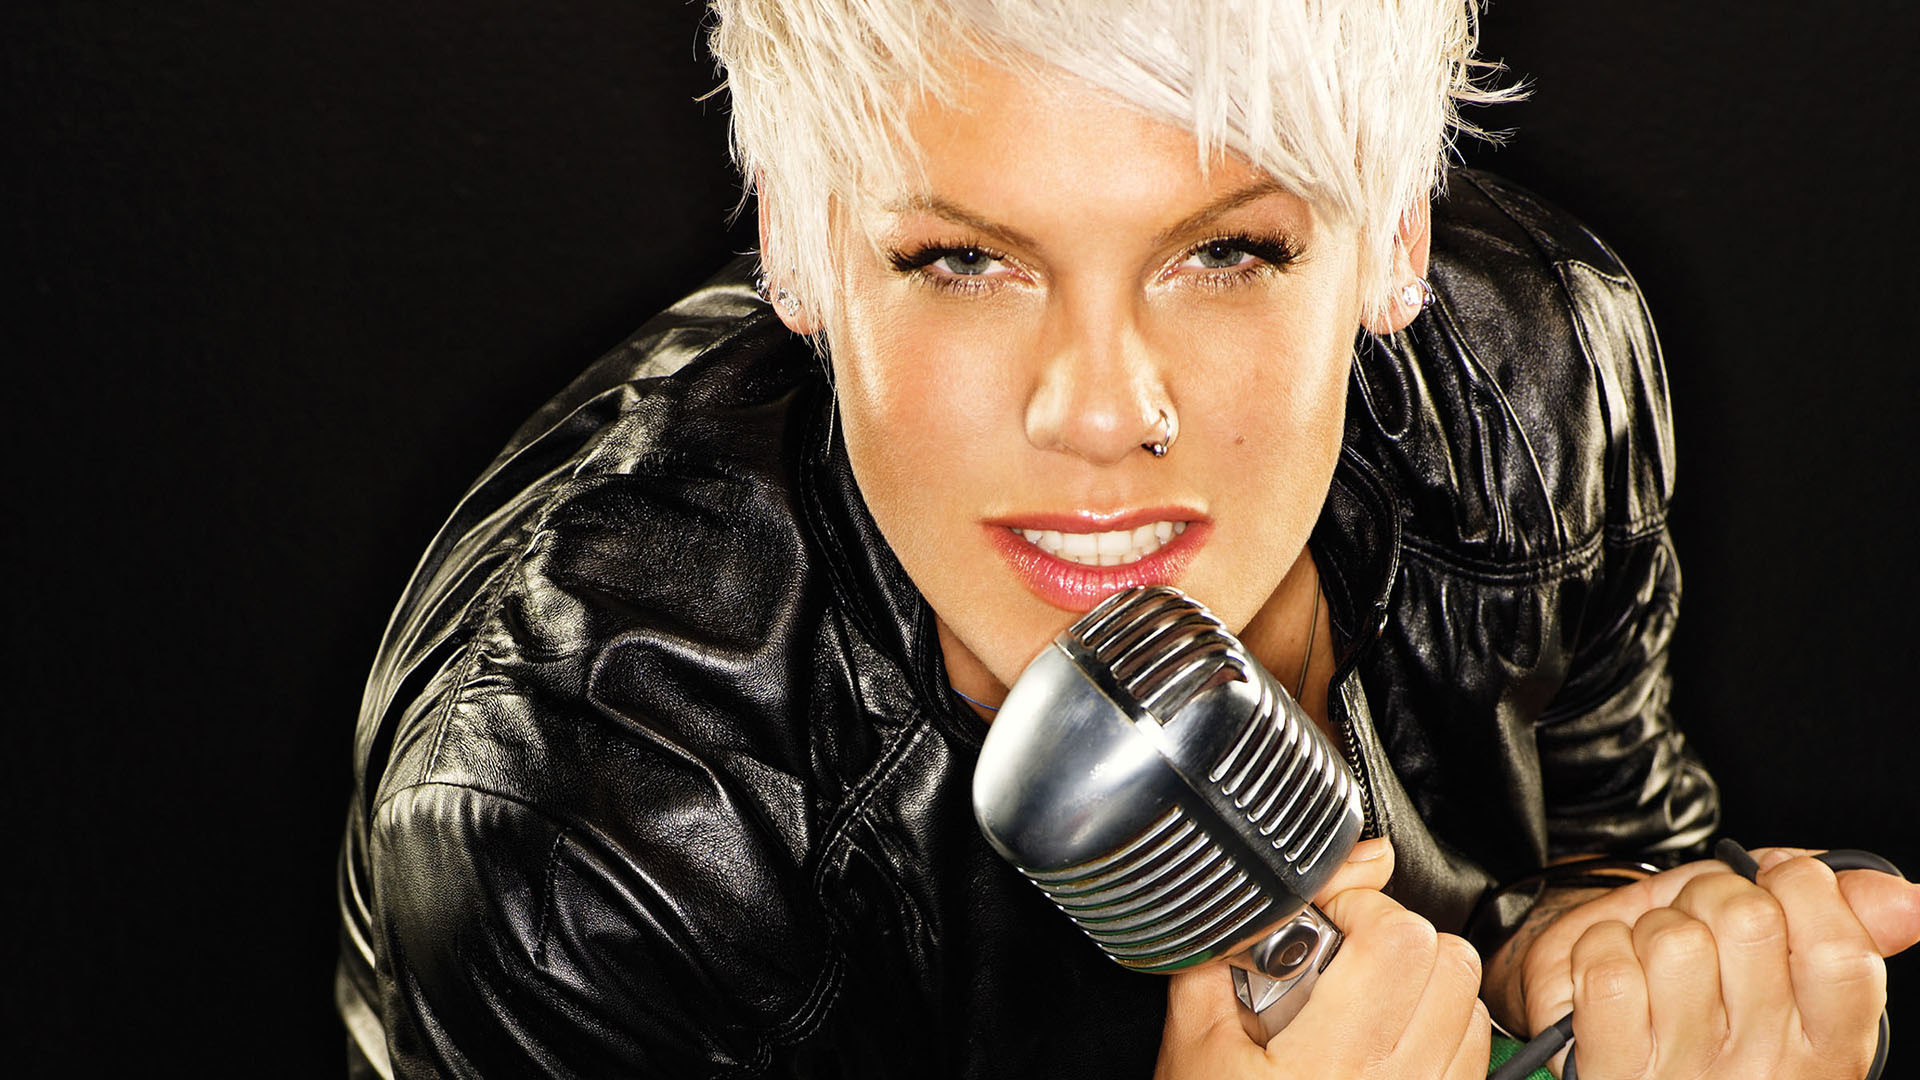 1920x1080 ... Pictures of Pink (singer) - Pictures Of Celebrities - HD Wallpapers ...